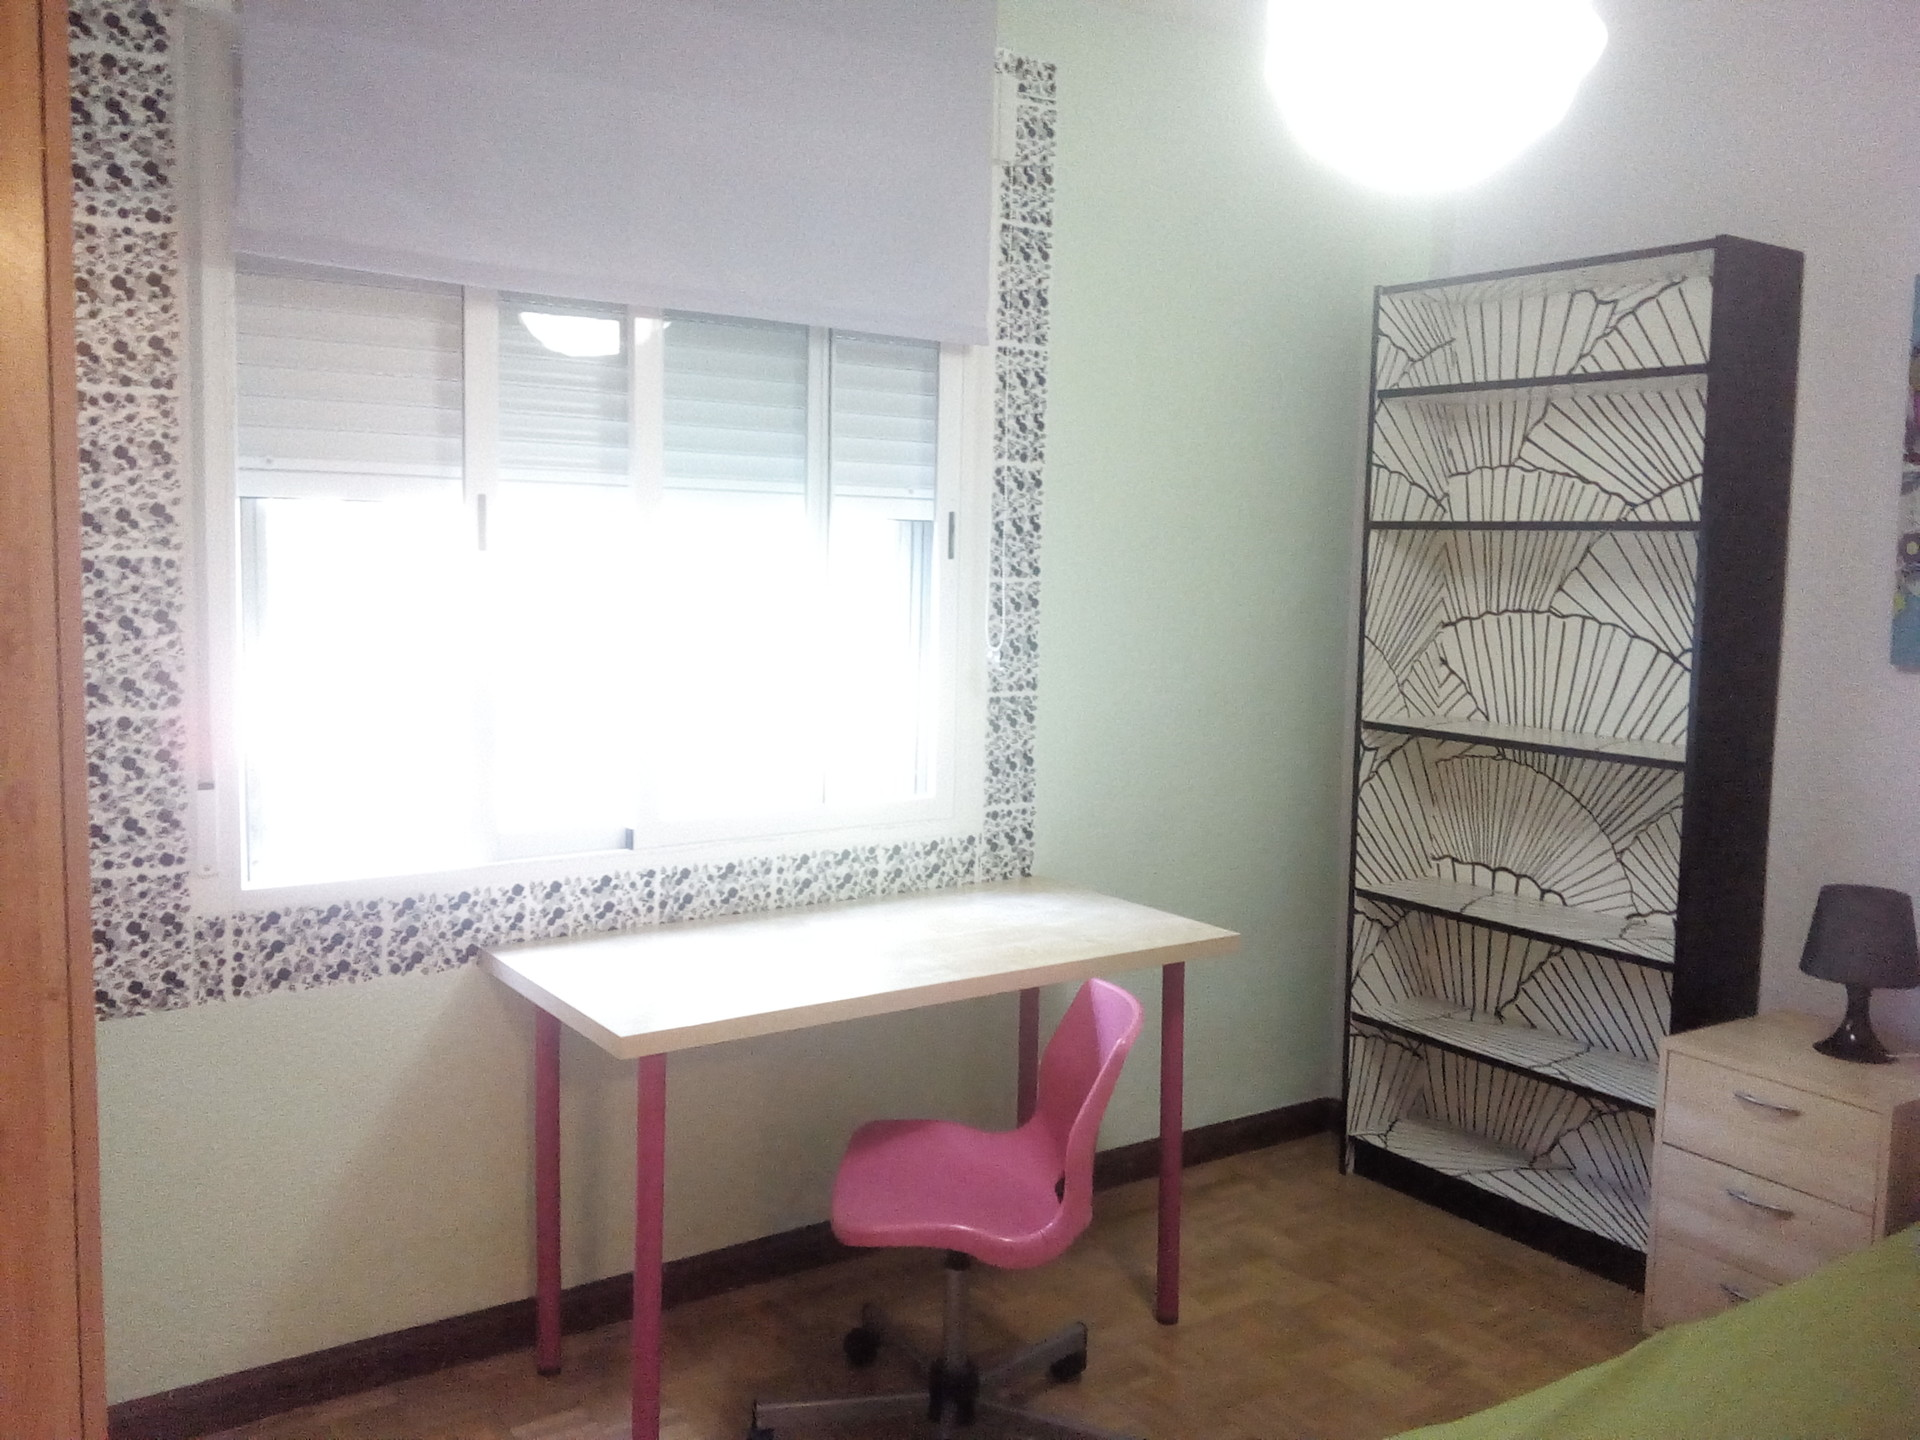 2 rooms in big flat in green neighborhood room for rent for Living room 10m2